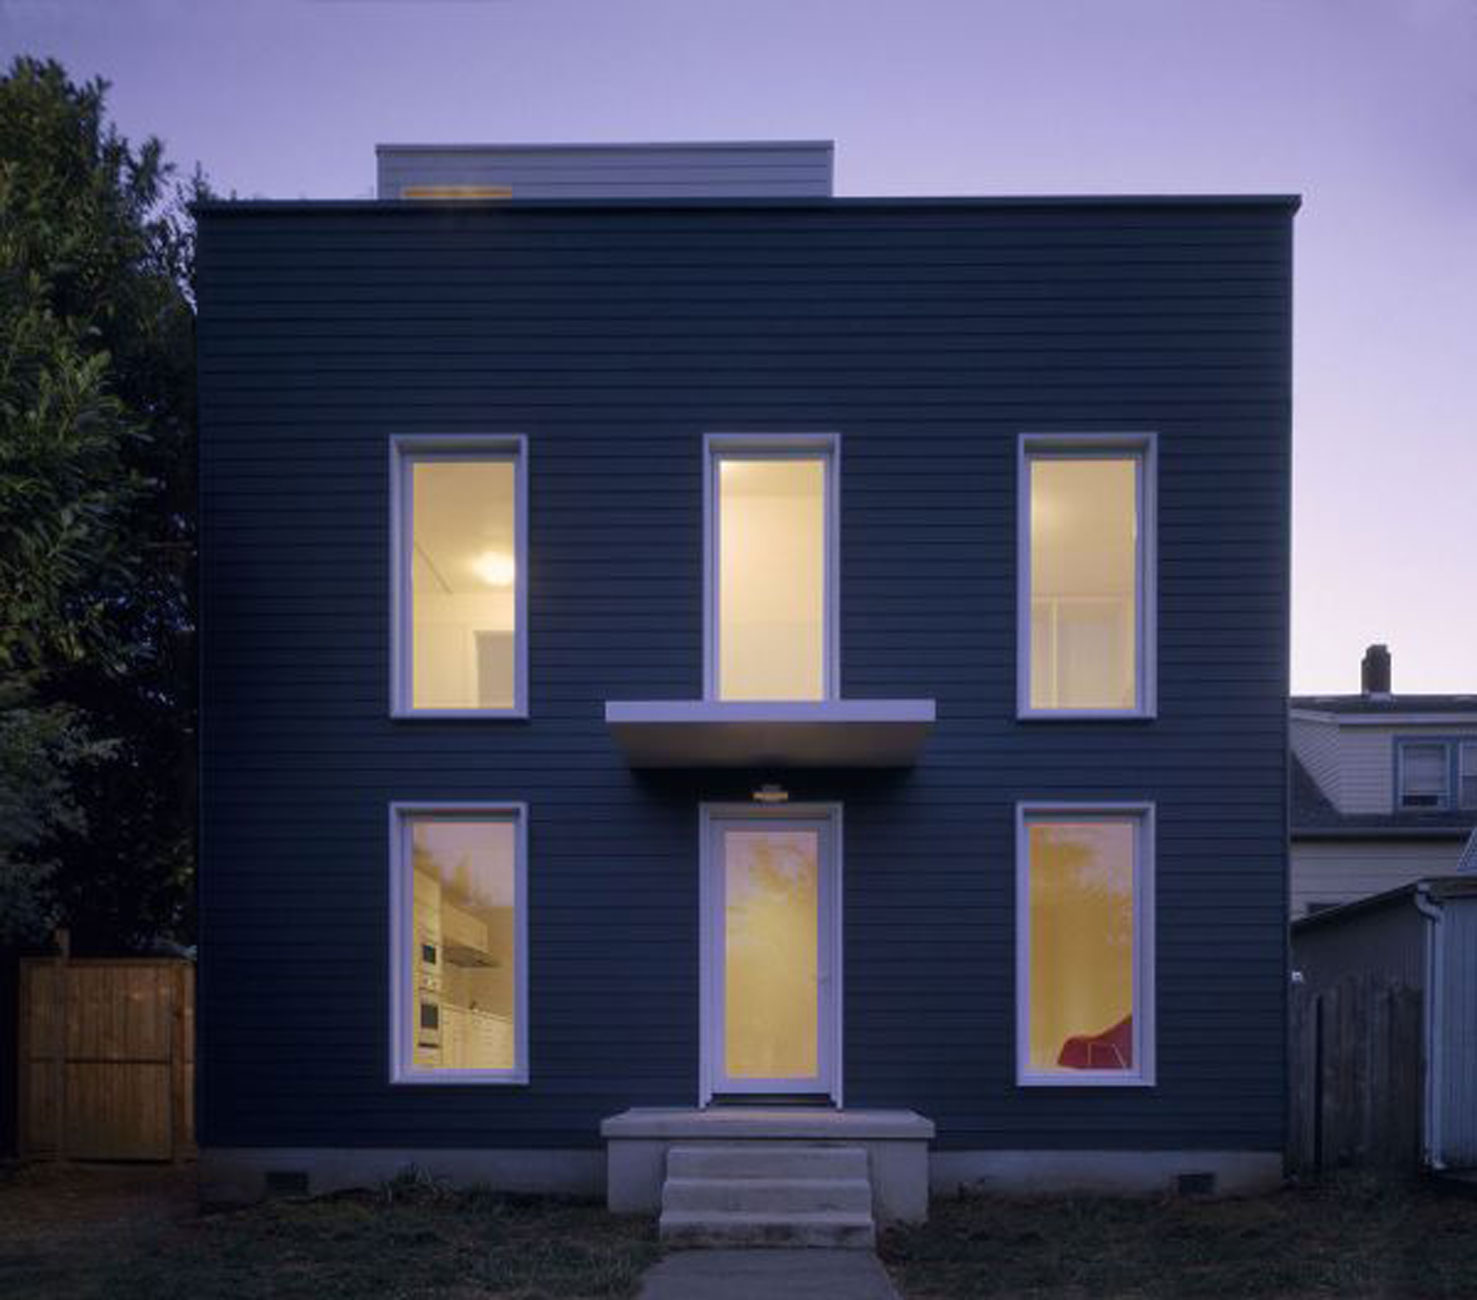 Beautiful Old House Renovated into A Minimalist Style House Design on gothic stained glass windows, architecture design windows, architectural windows, interior design windows, kitchen windows,